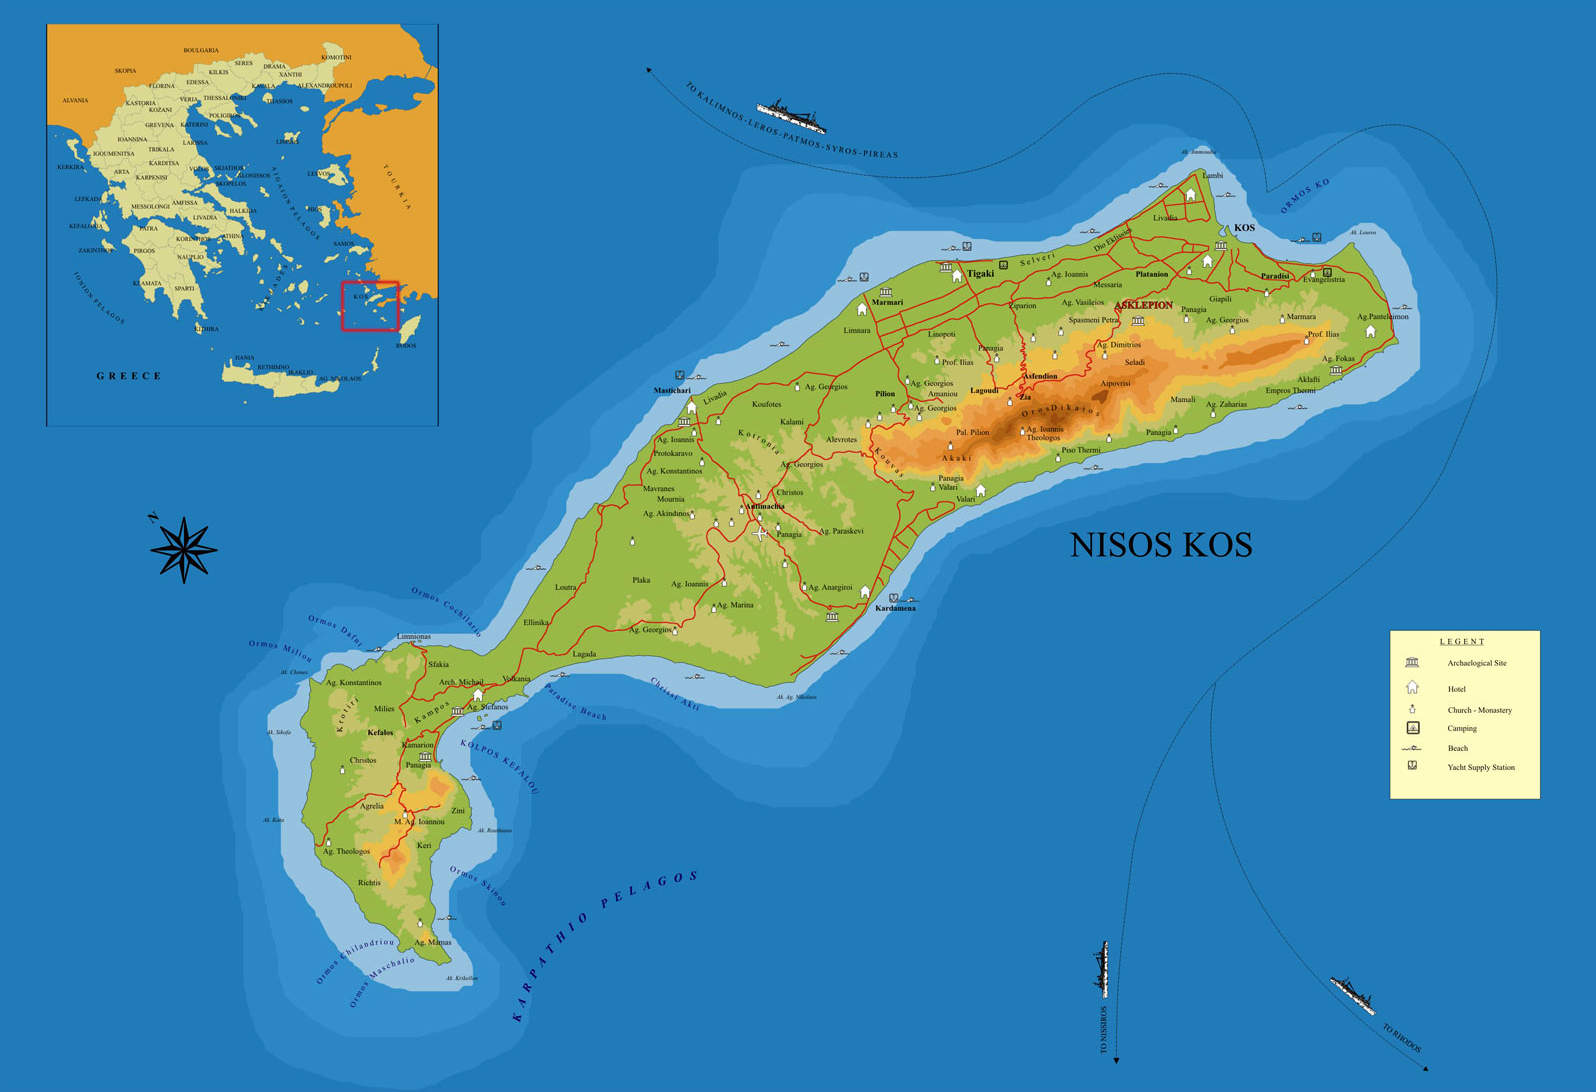 The island of Kos or Cos in the Aegean